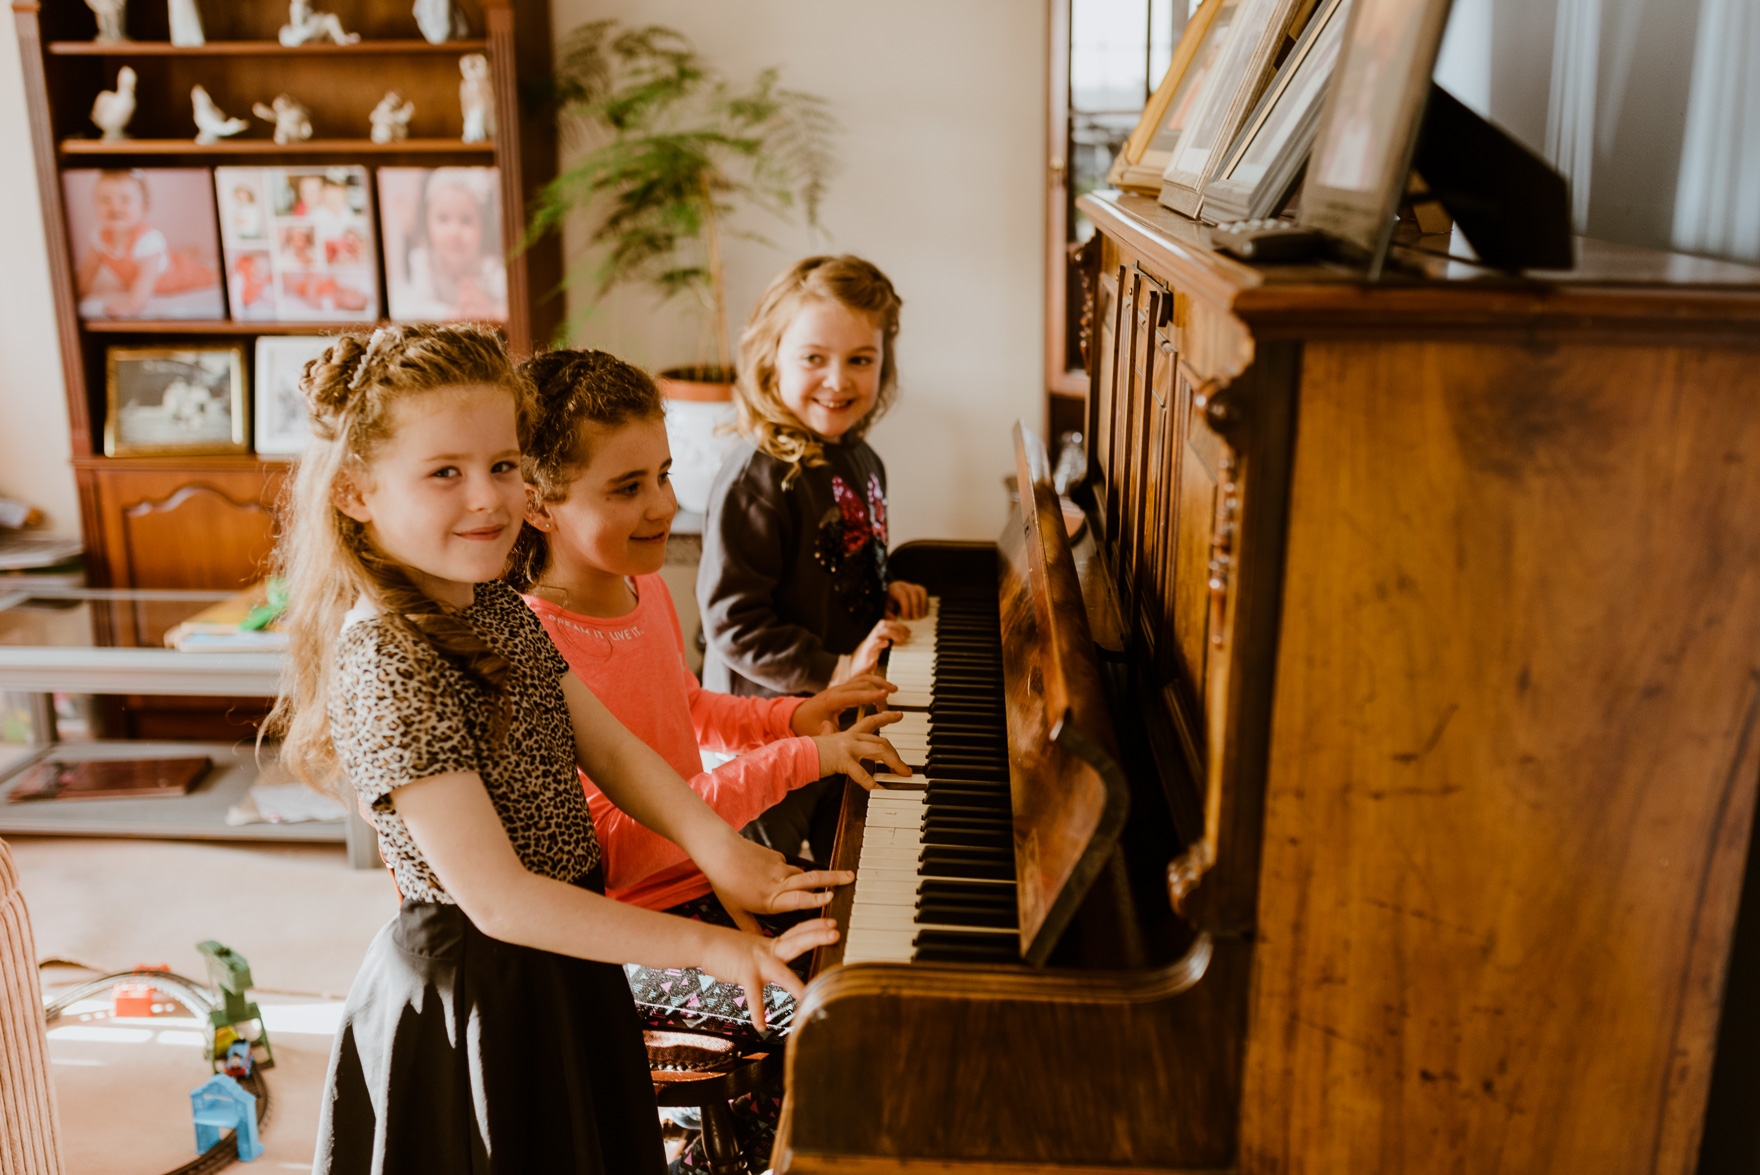 A little girl standing in front of a piano